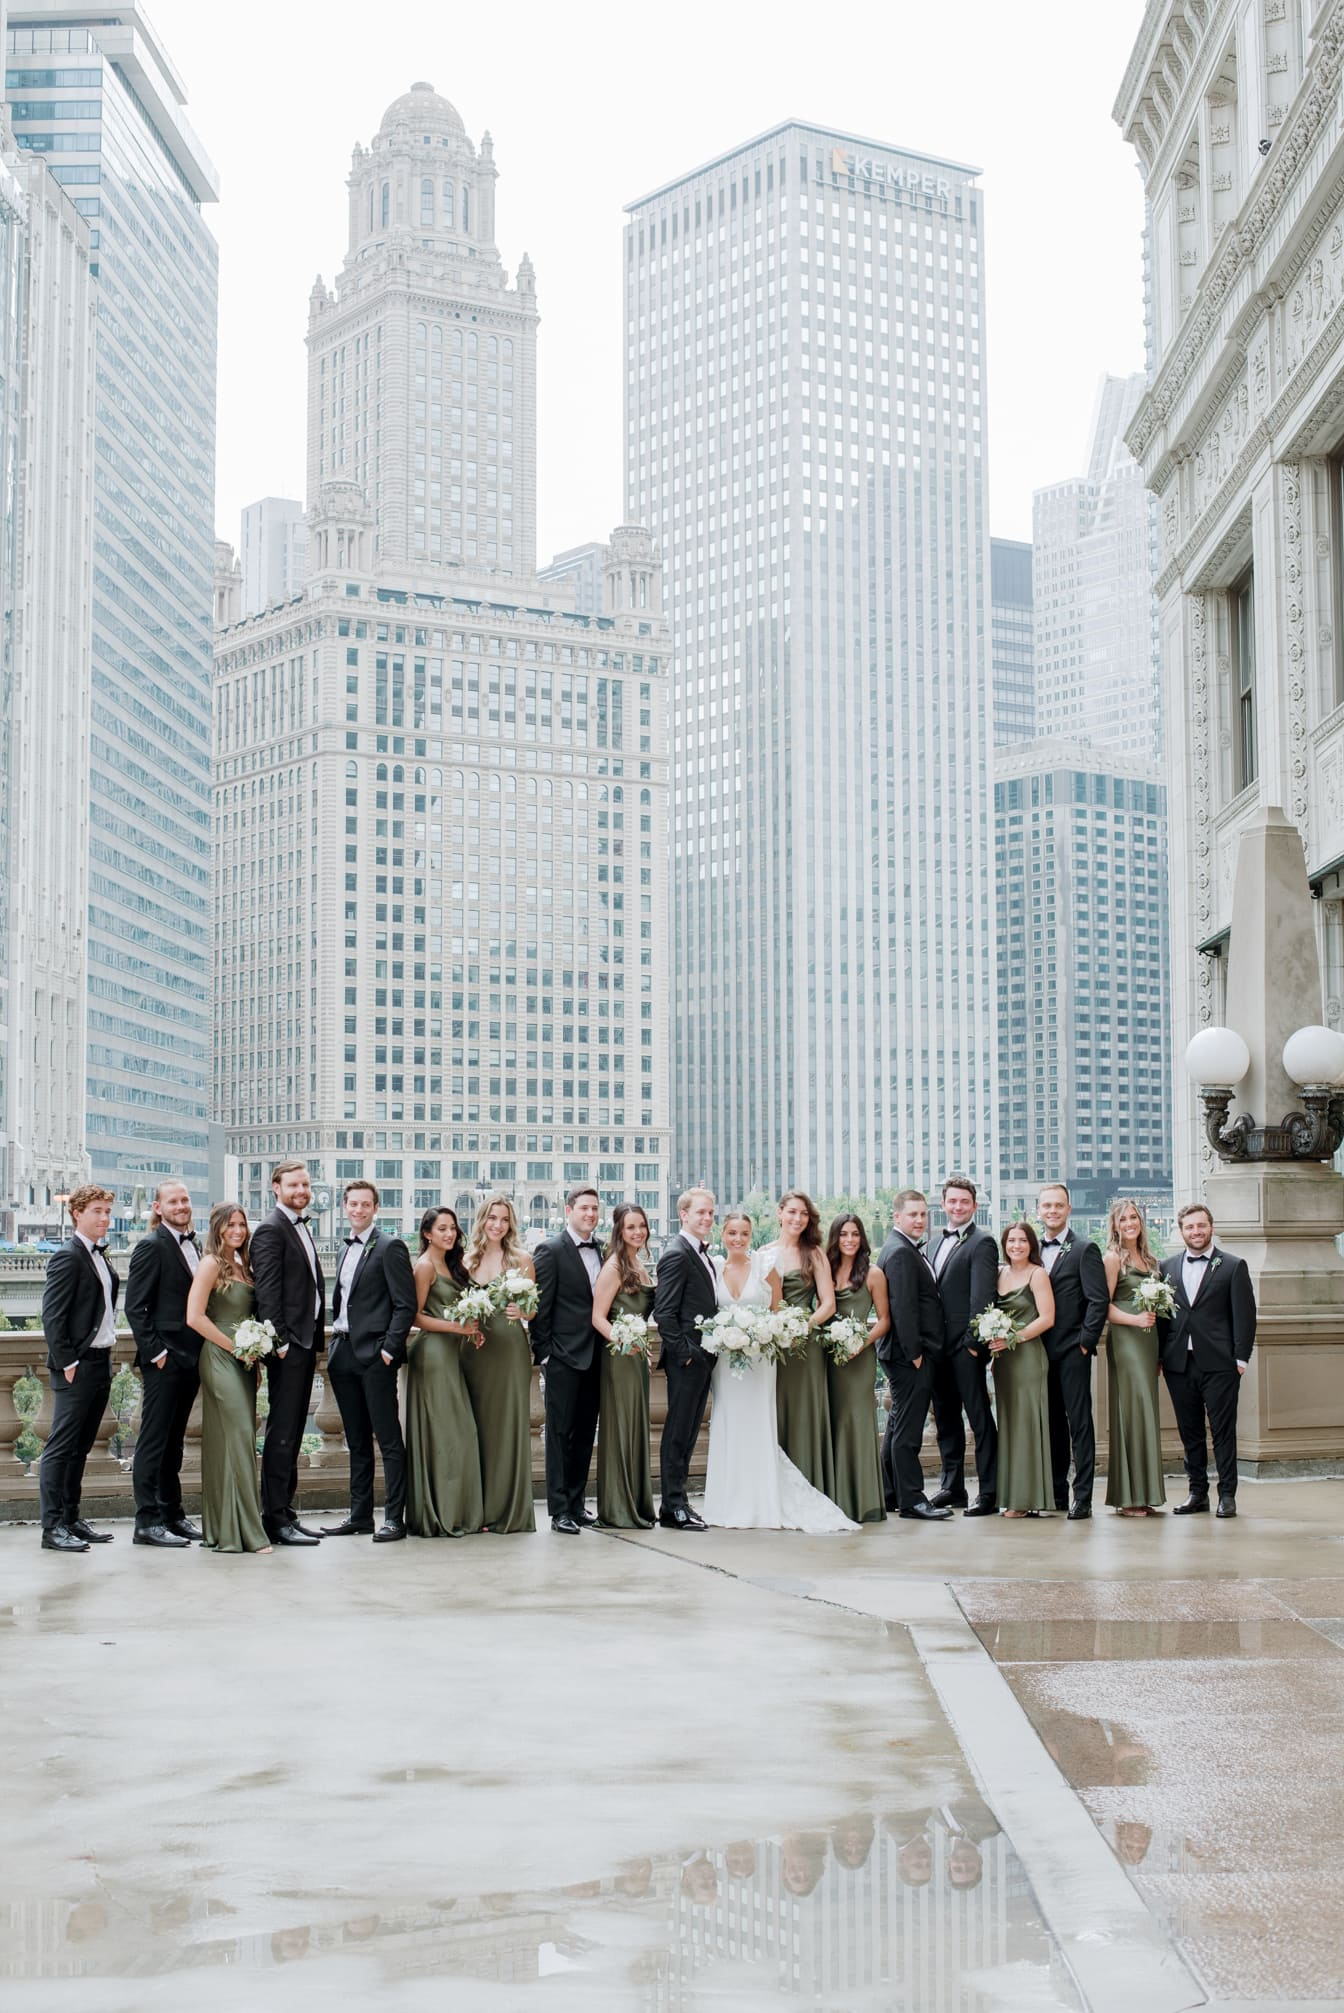 Wedding Party cheering at Wrigley Building